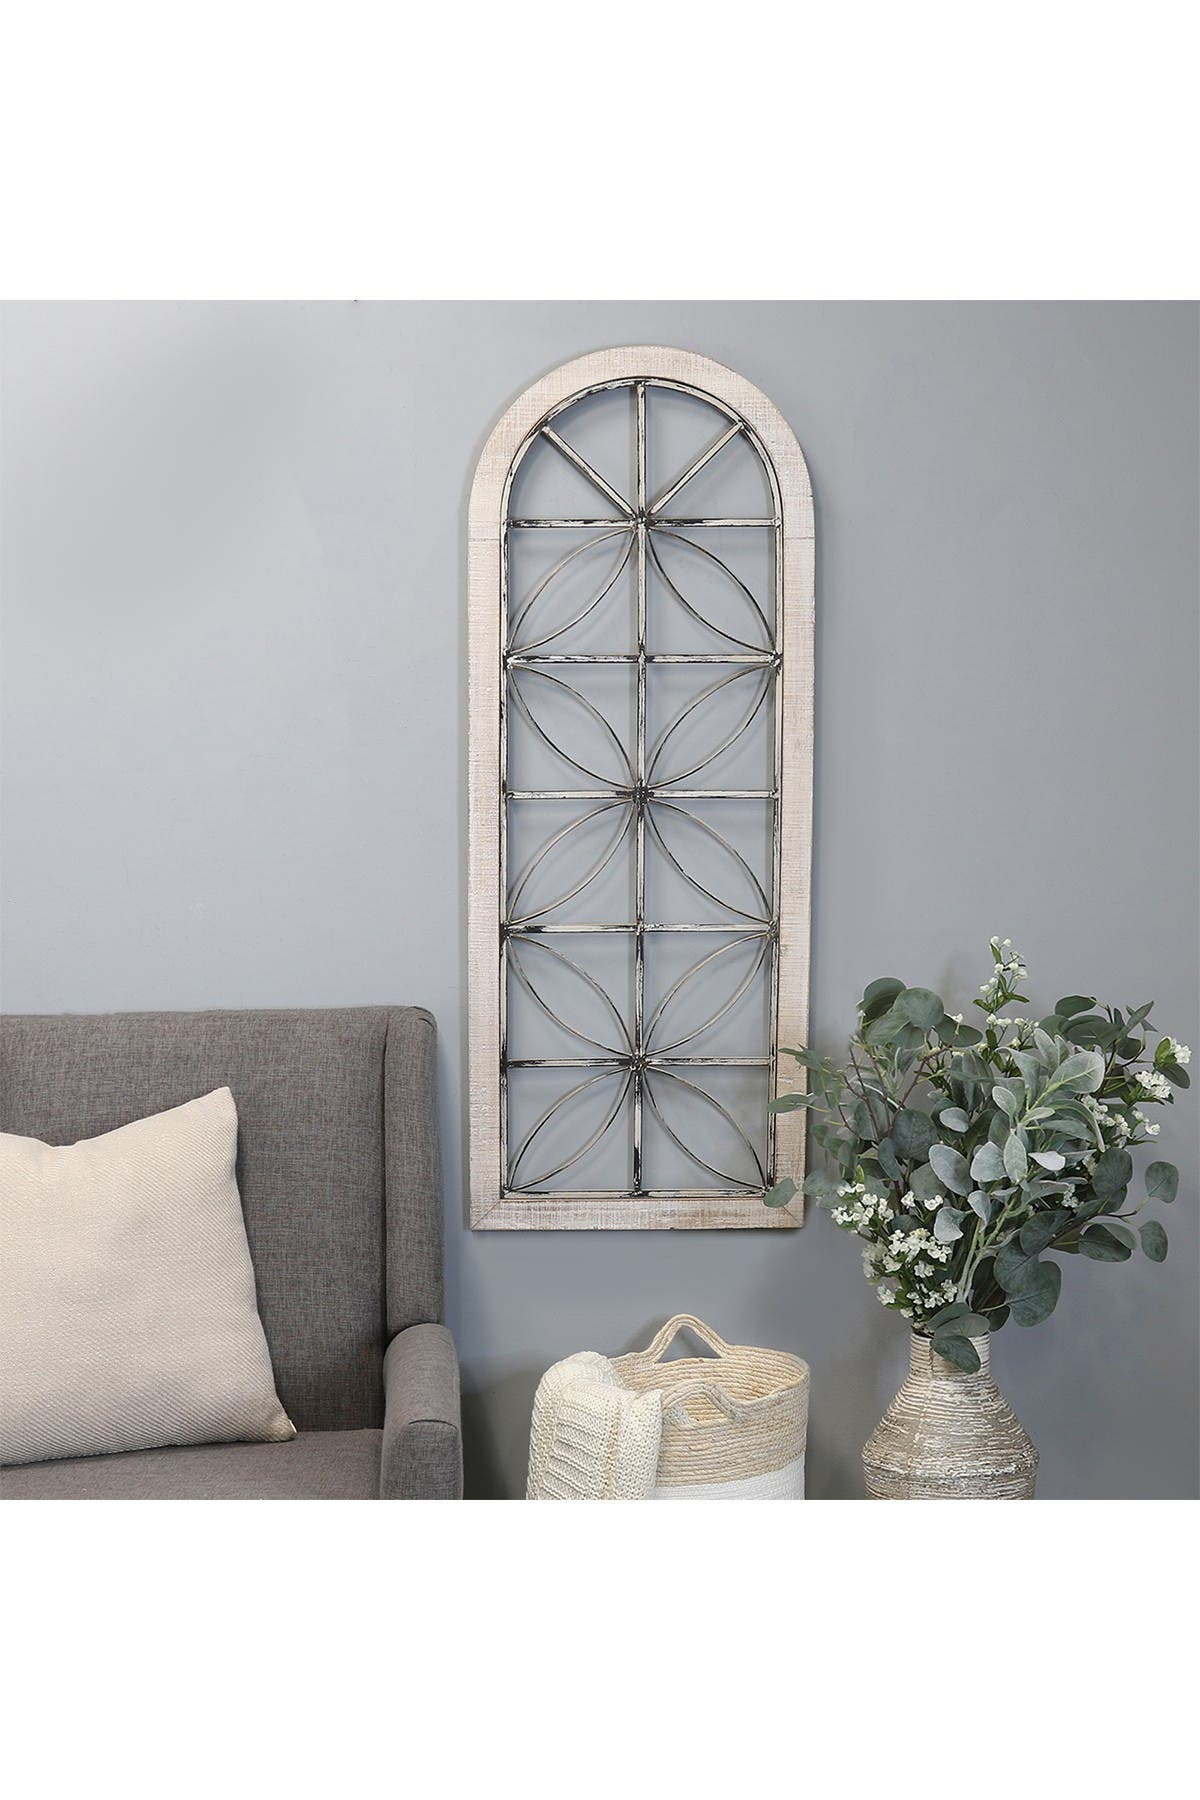 Image of Stratton Home Window Wall Panel